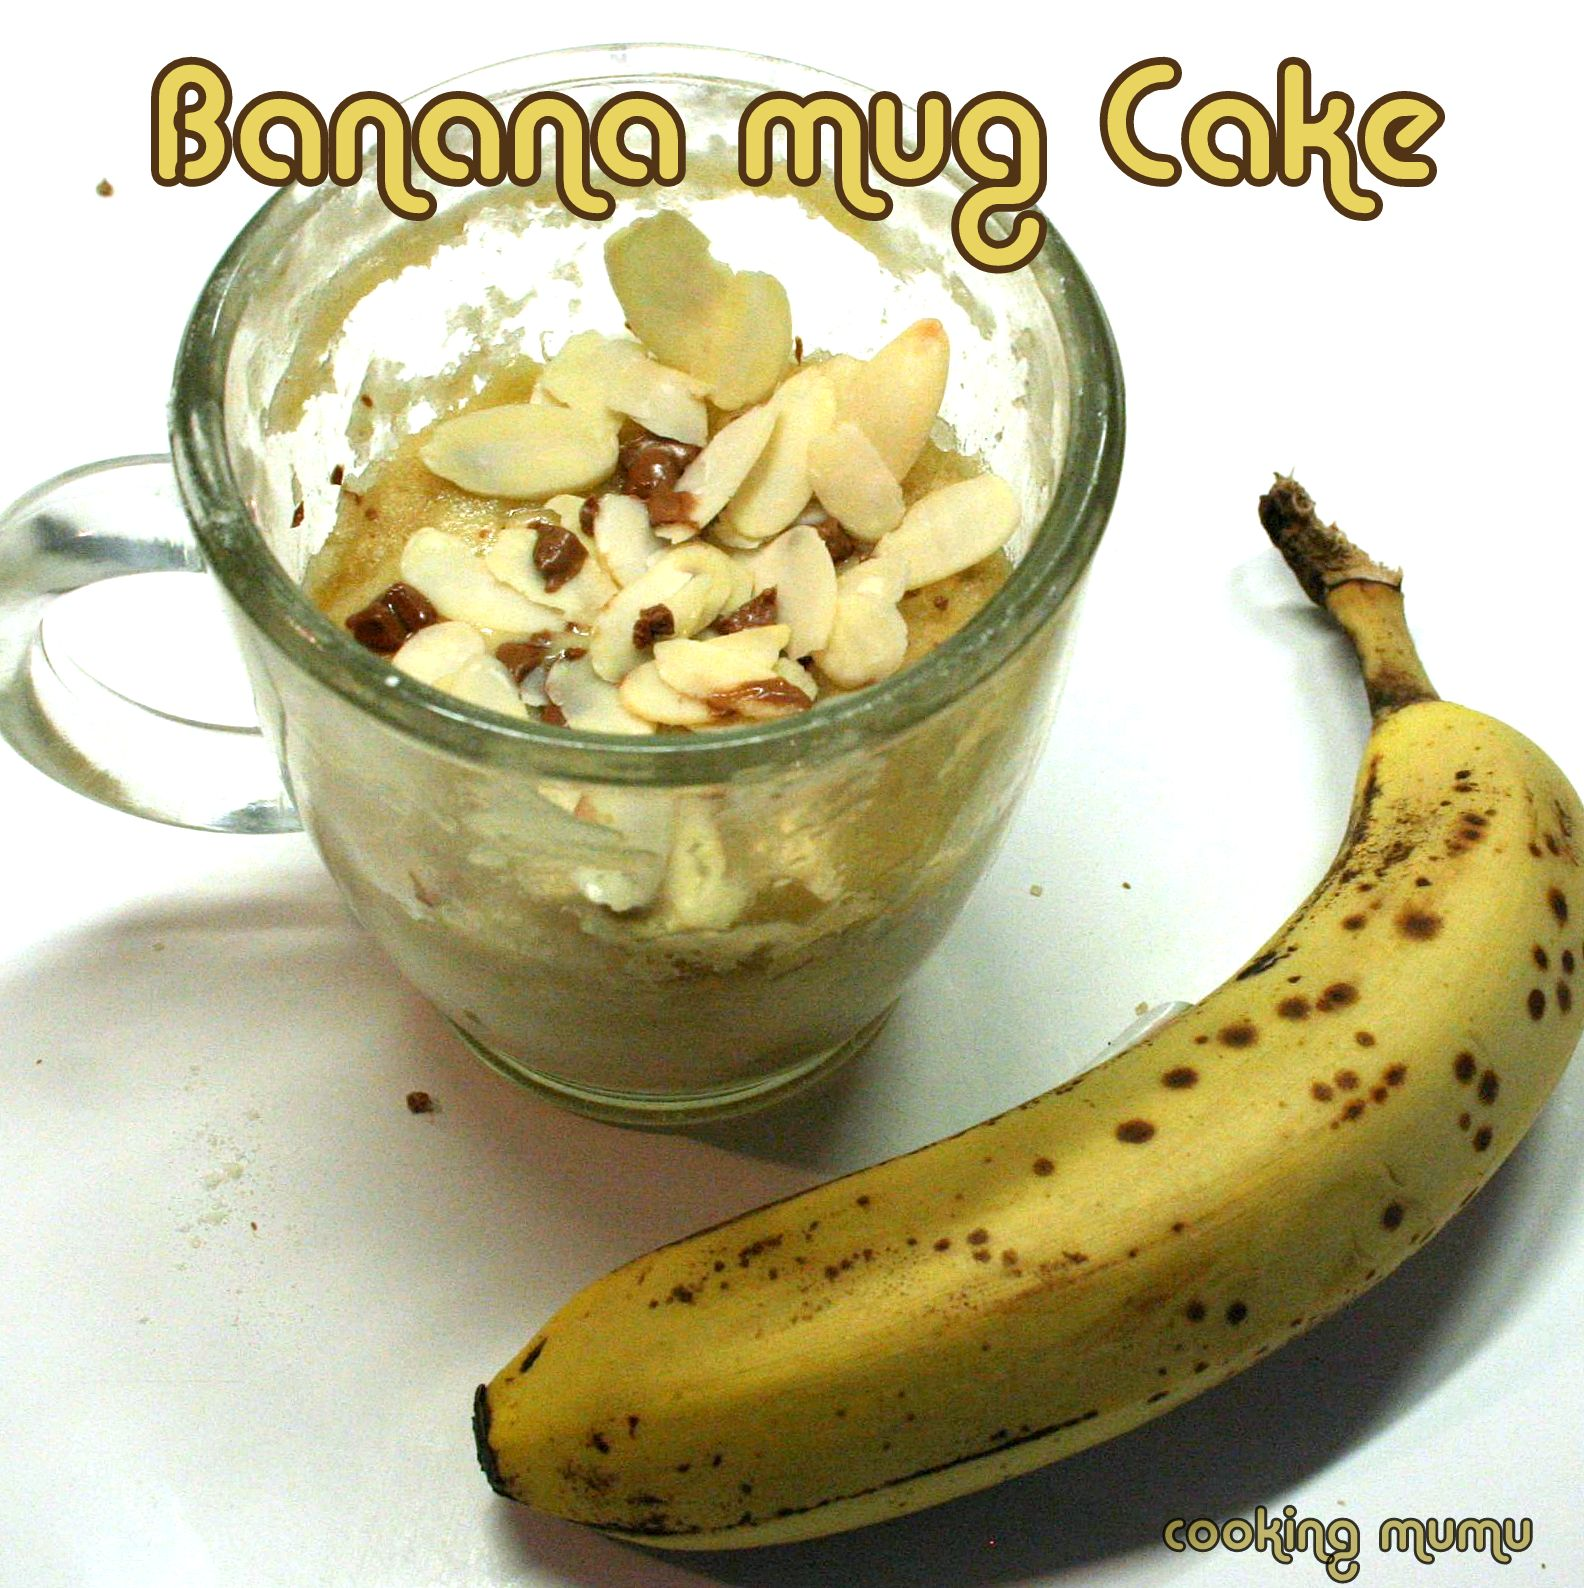 banana mug cake le banana bread en 5mn au micro ondes cooking mumu. Black Bedroom Furniture Sets. Home Design Ideas